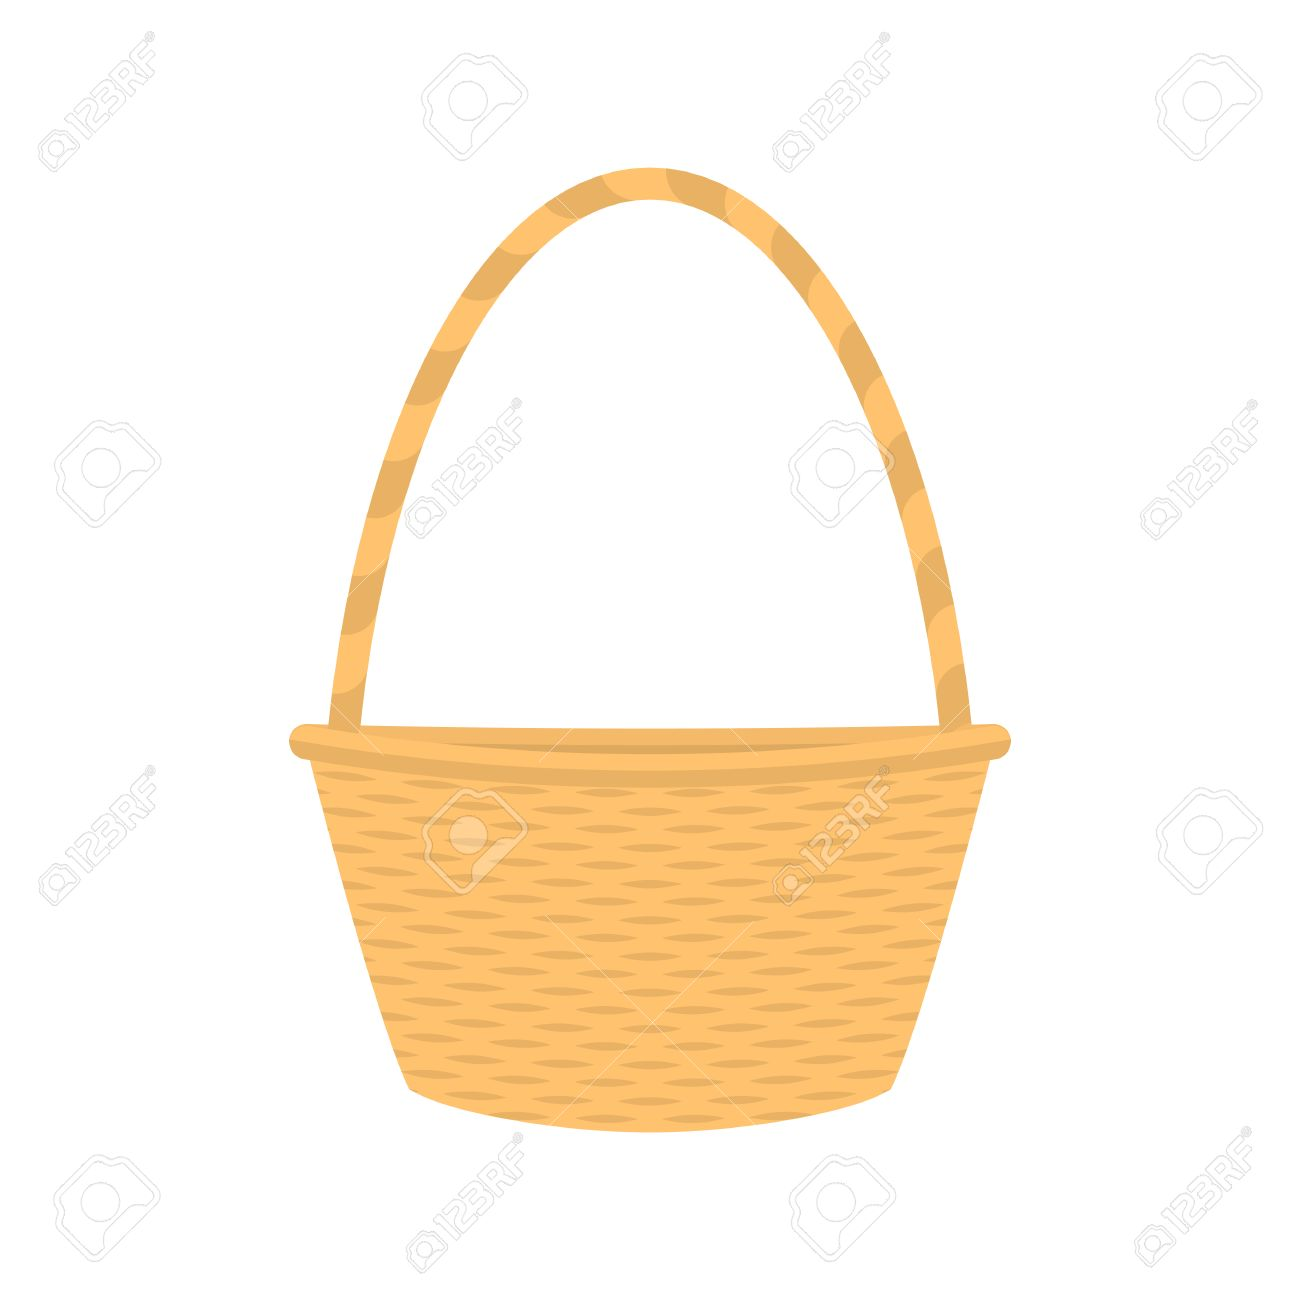 White wicker baskets with handle - Vector Vector Illustration Cartoon Straw Wicker Basket Isolated On White Background Flat Style Empty Decorative Braided Basket With Handle